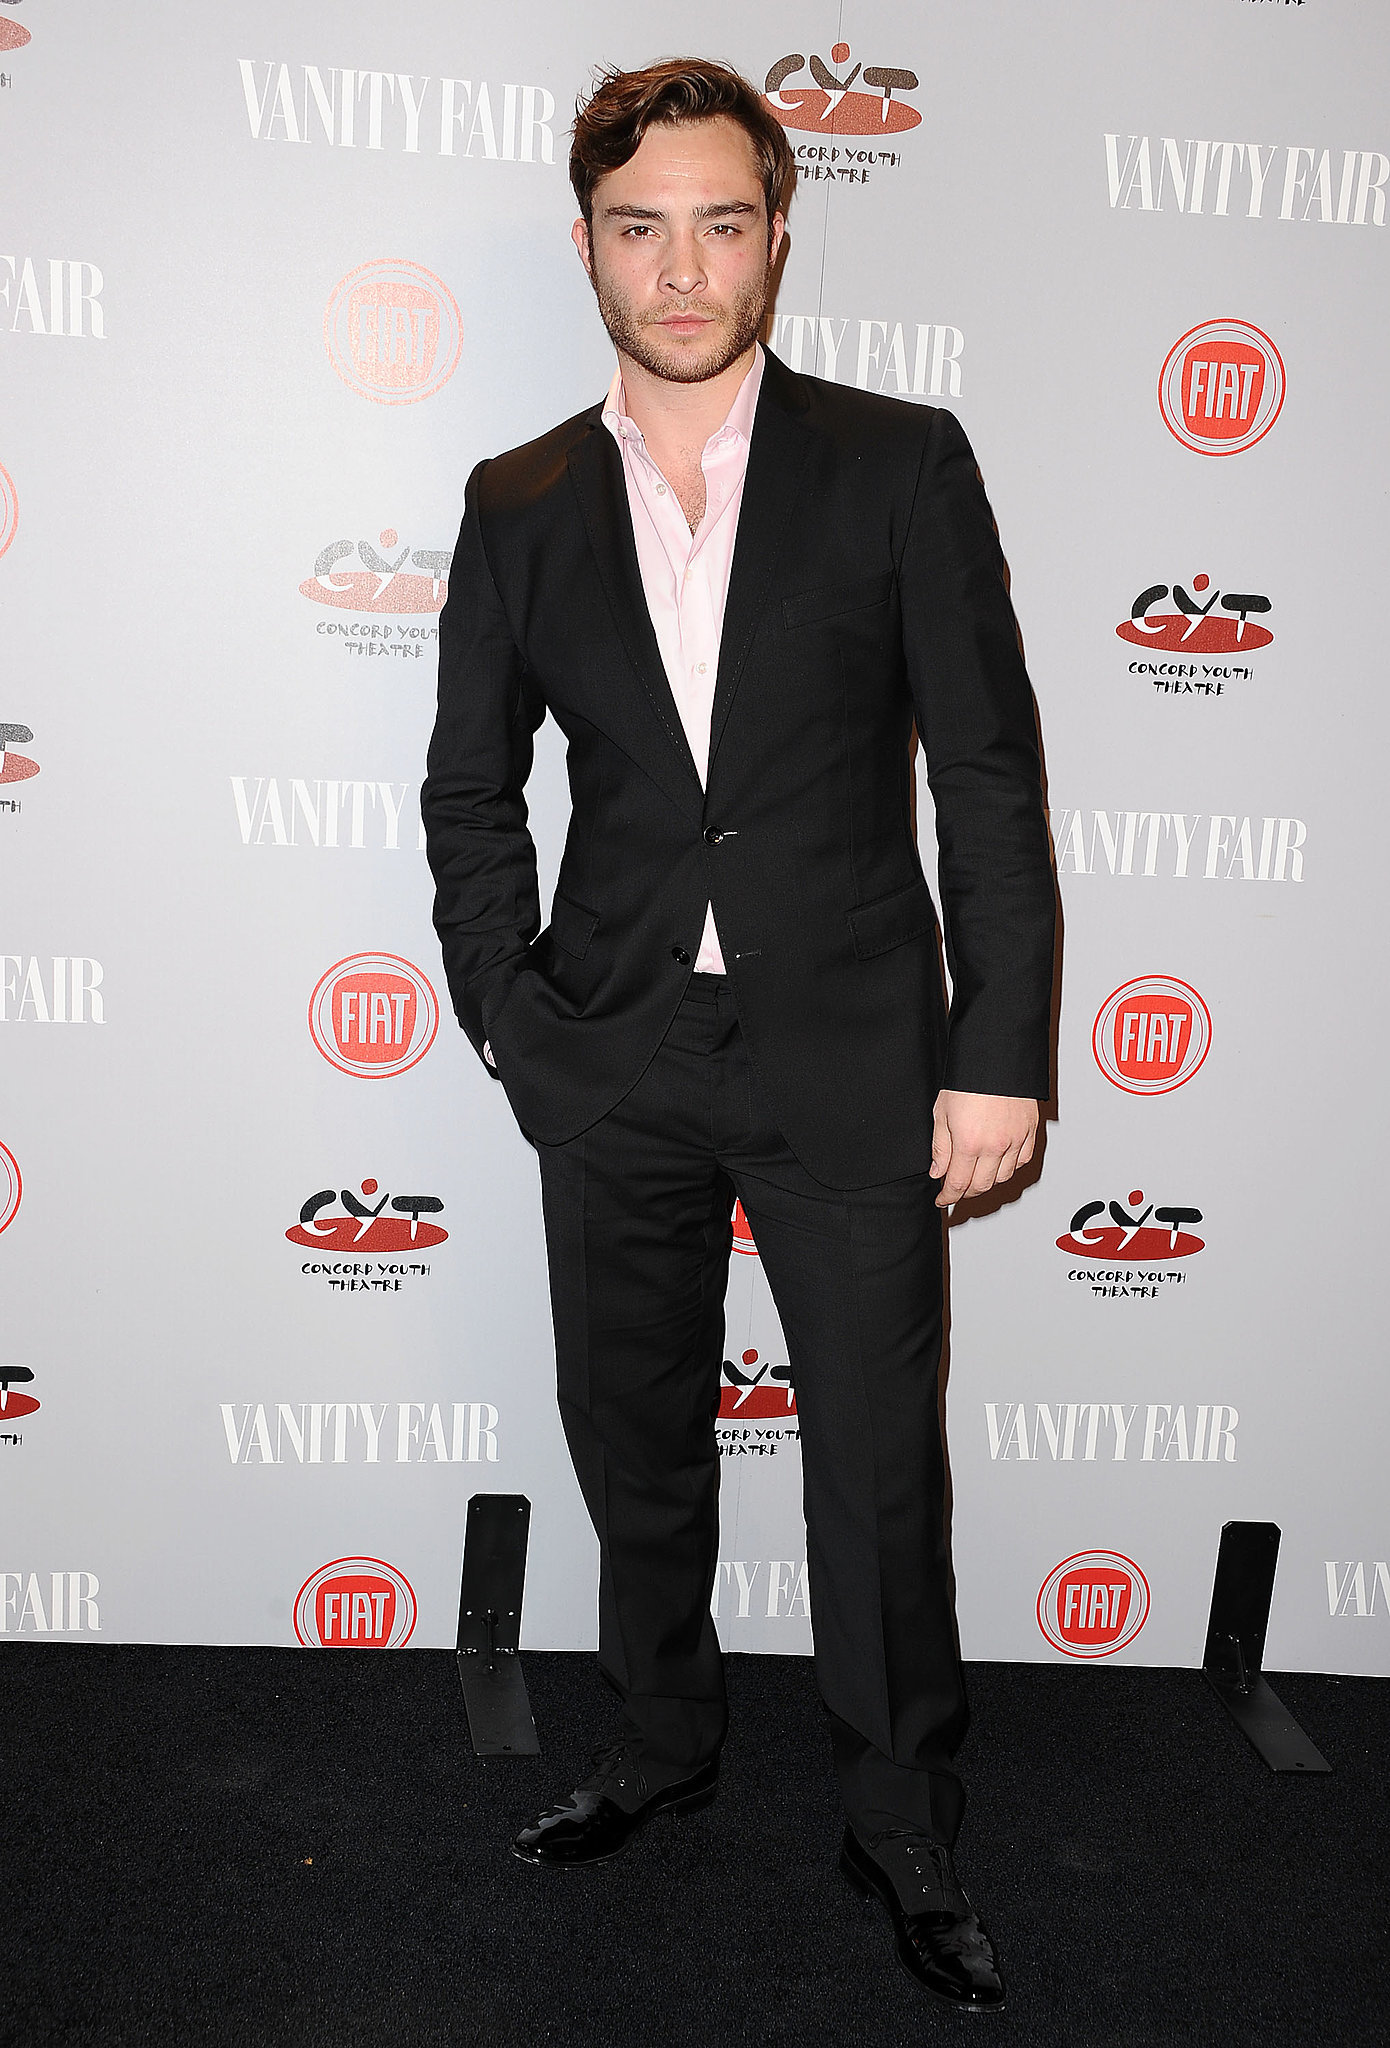 Ed Westwick channeled his inner Chuck Bass in a suit.